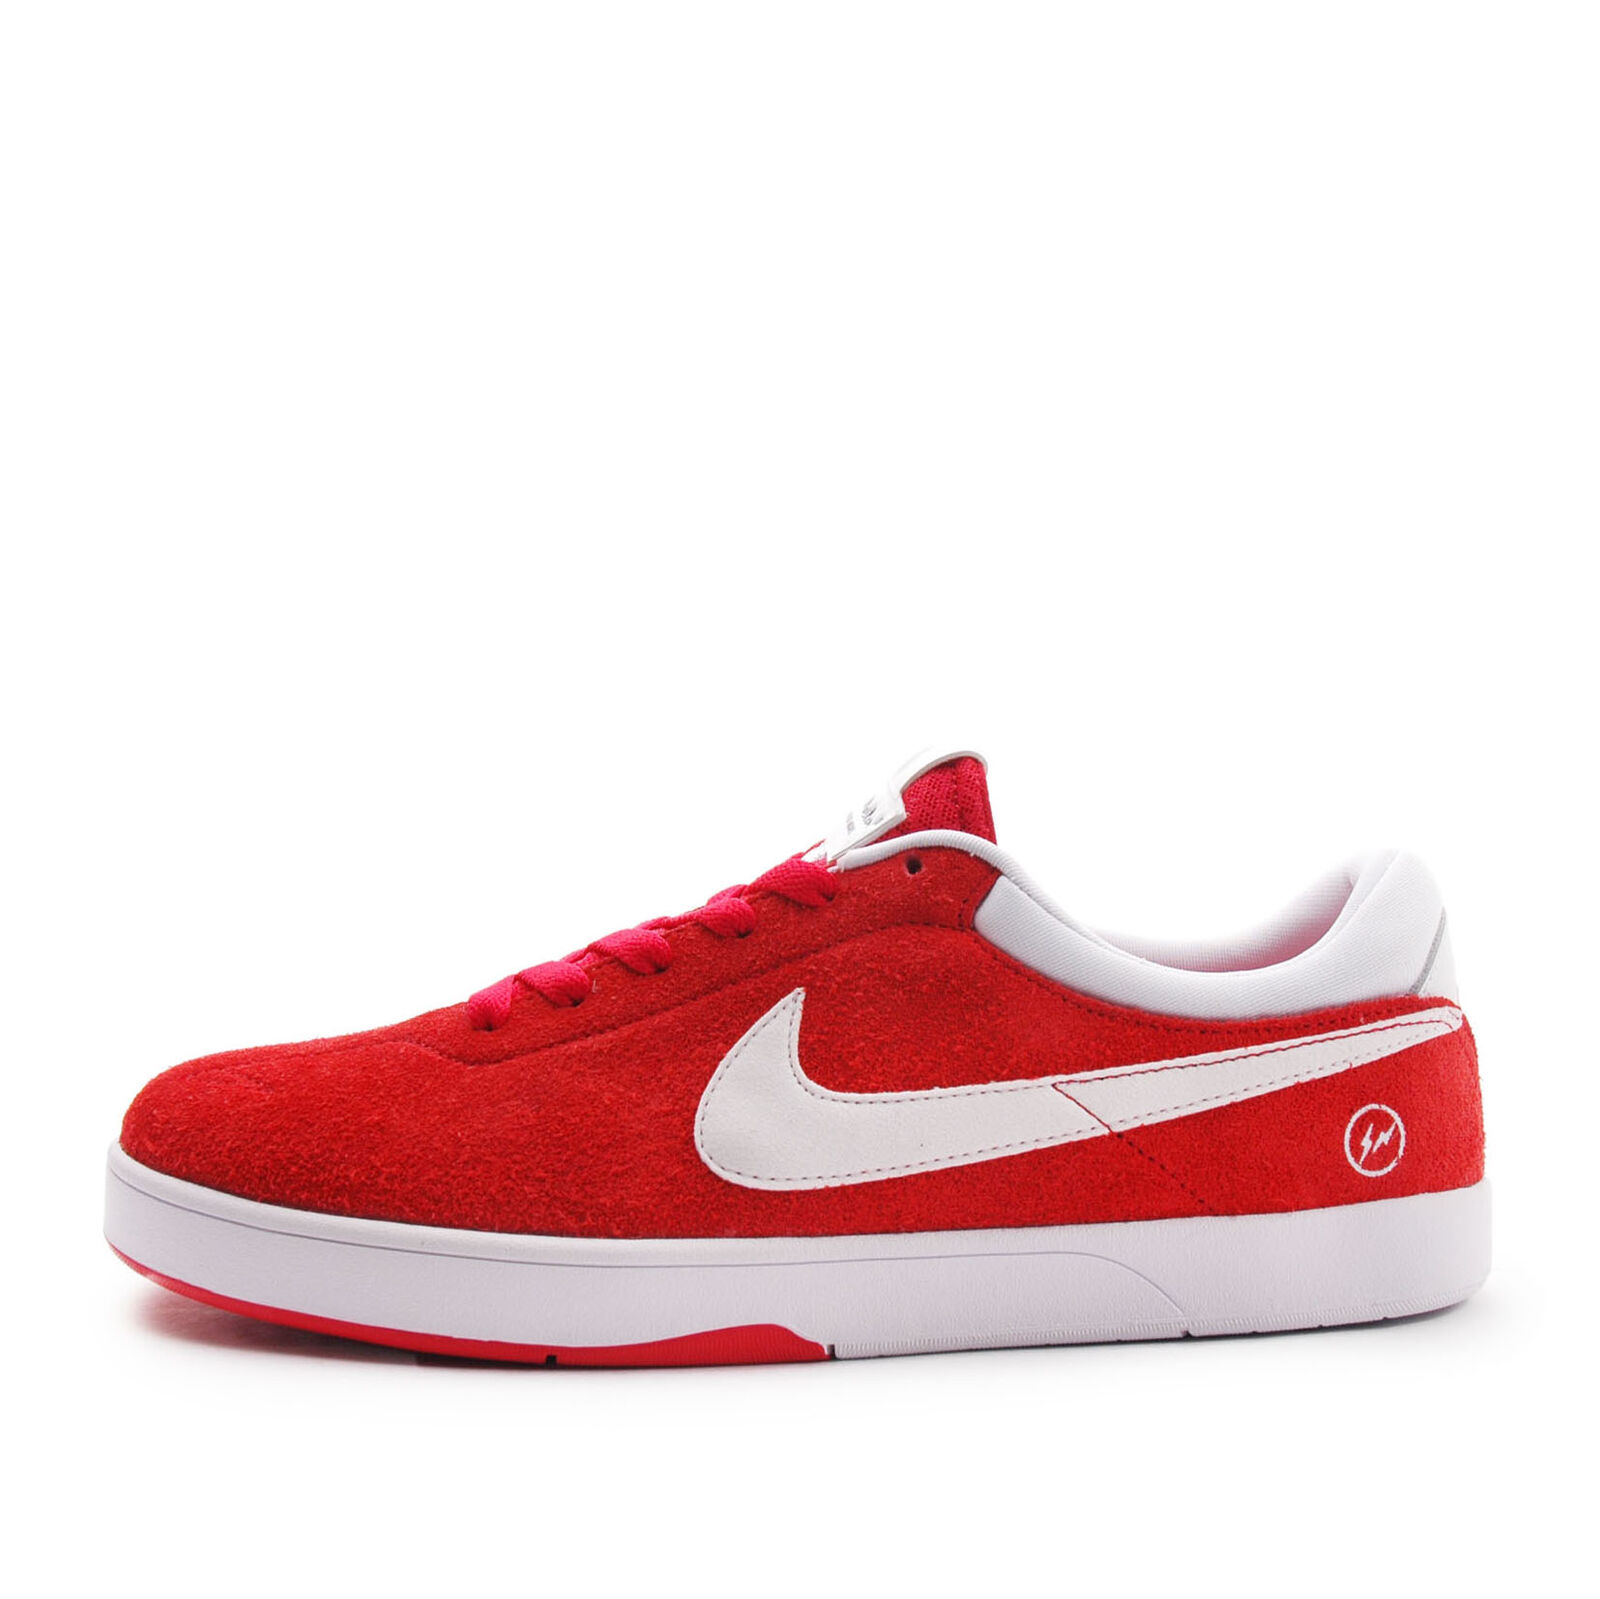 Nike Eric Koston Fragment Price reduction Skateboarding Red/White Cheap women's shoes women's shoes